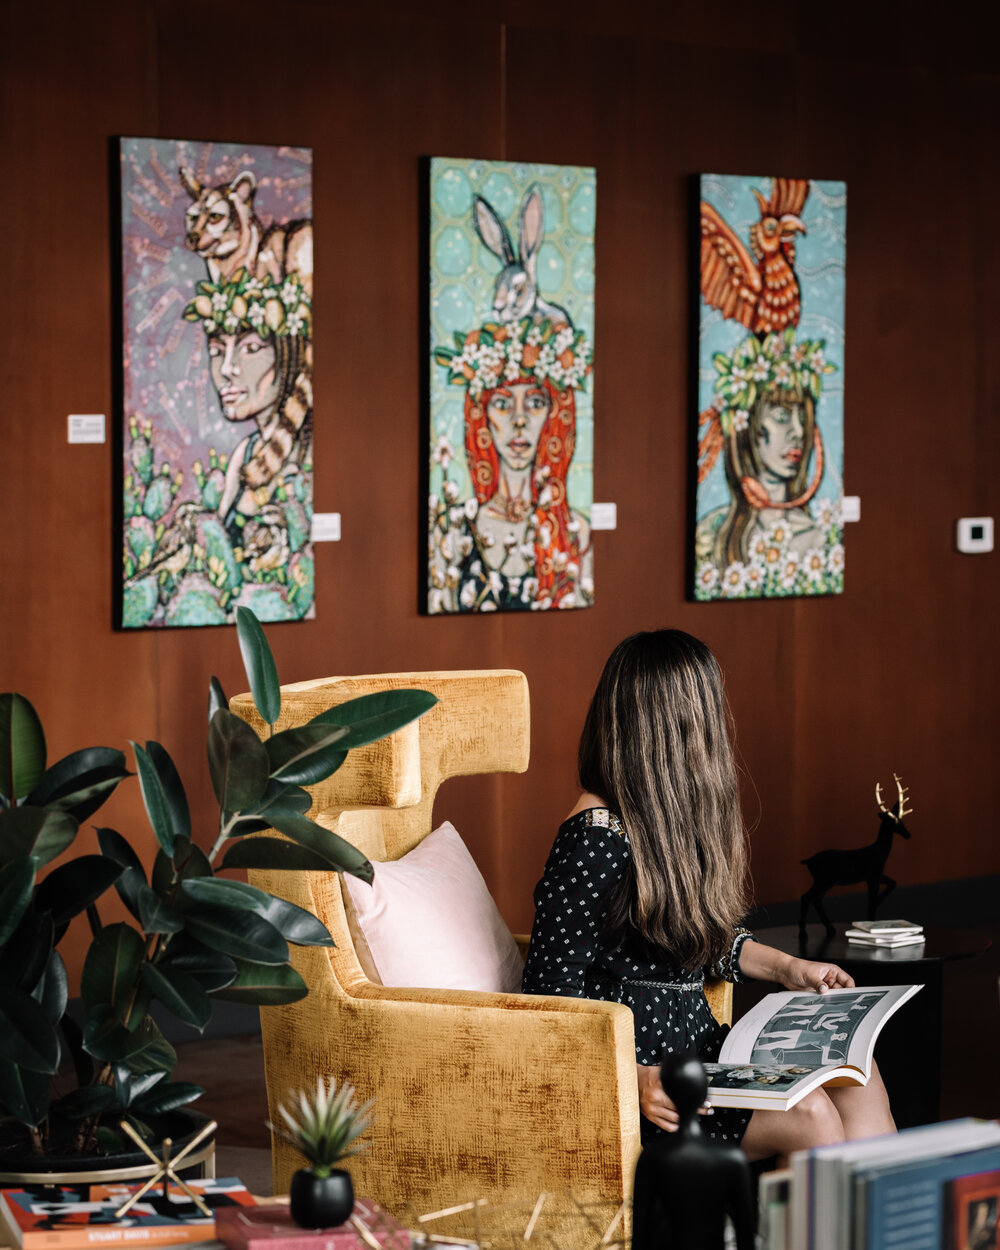 Rachel Off Duty: A Woman Reading in a Hotel Lobby with Art on the Walls